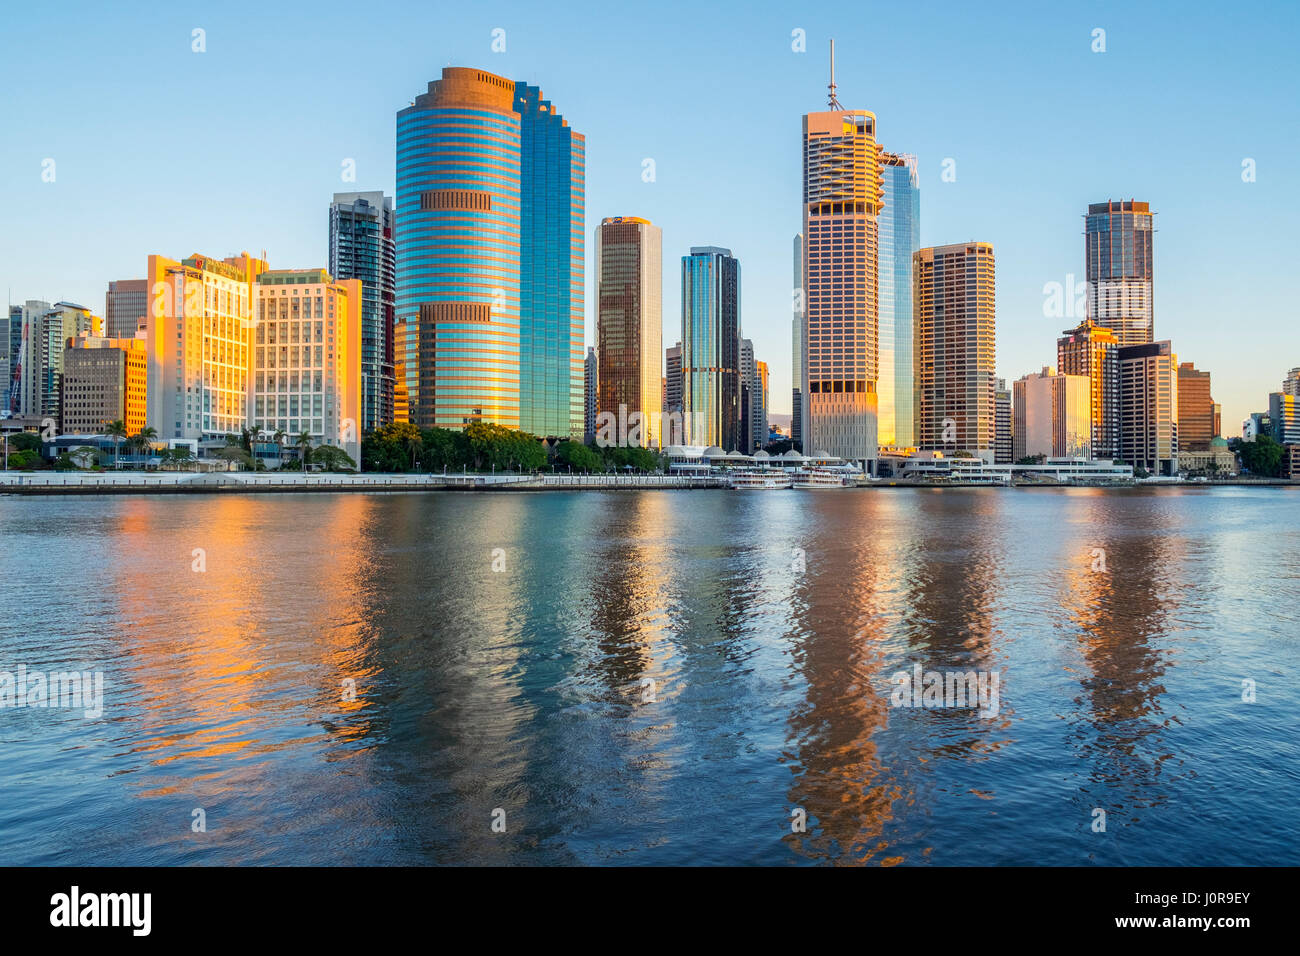 Dawn view of skyline of central business district of Brisbane in Queensland Australia - Stock Image